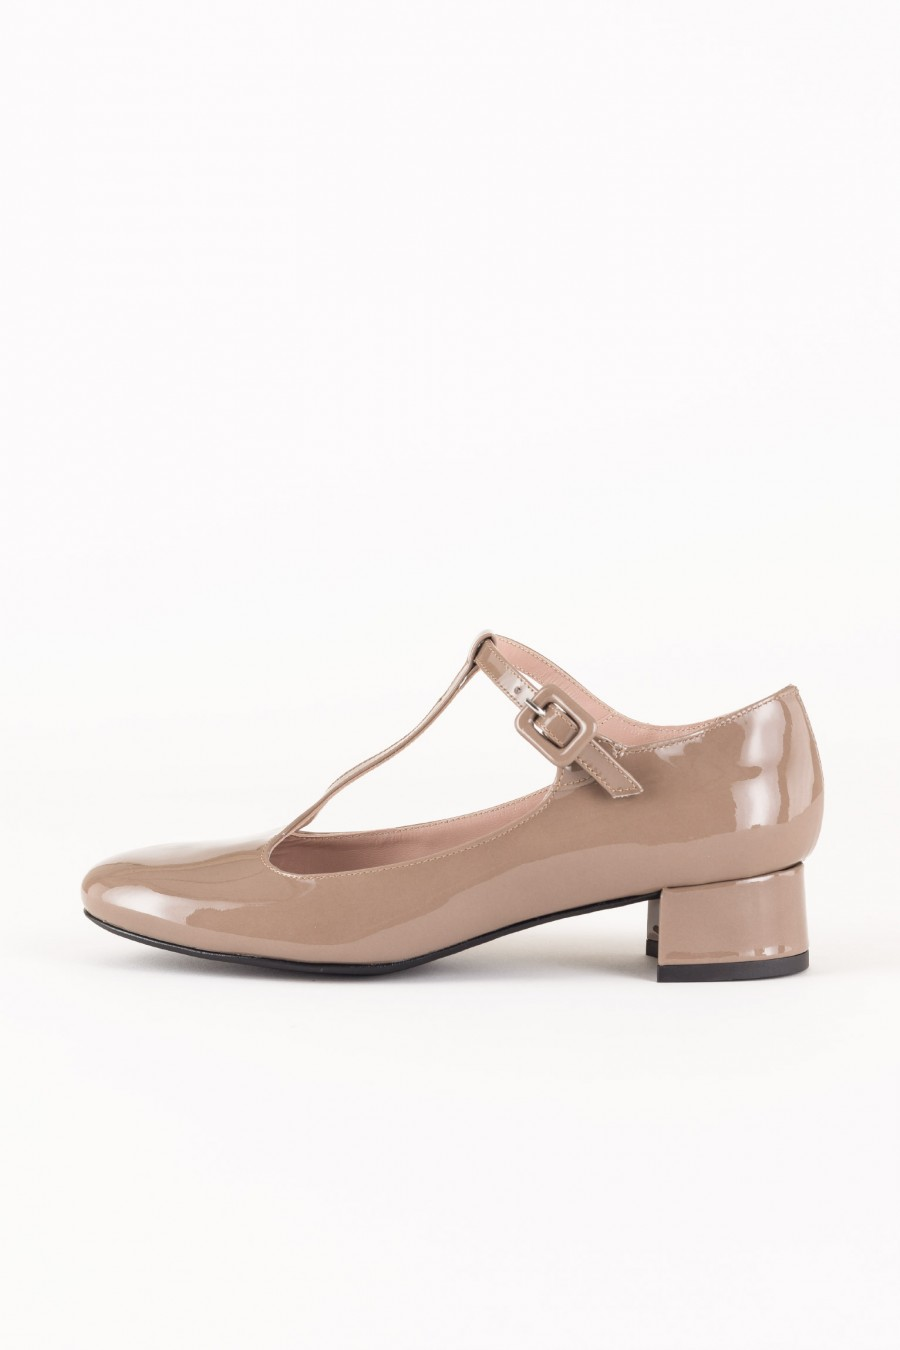 Mud patent flats with T strap